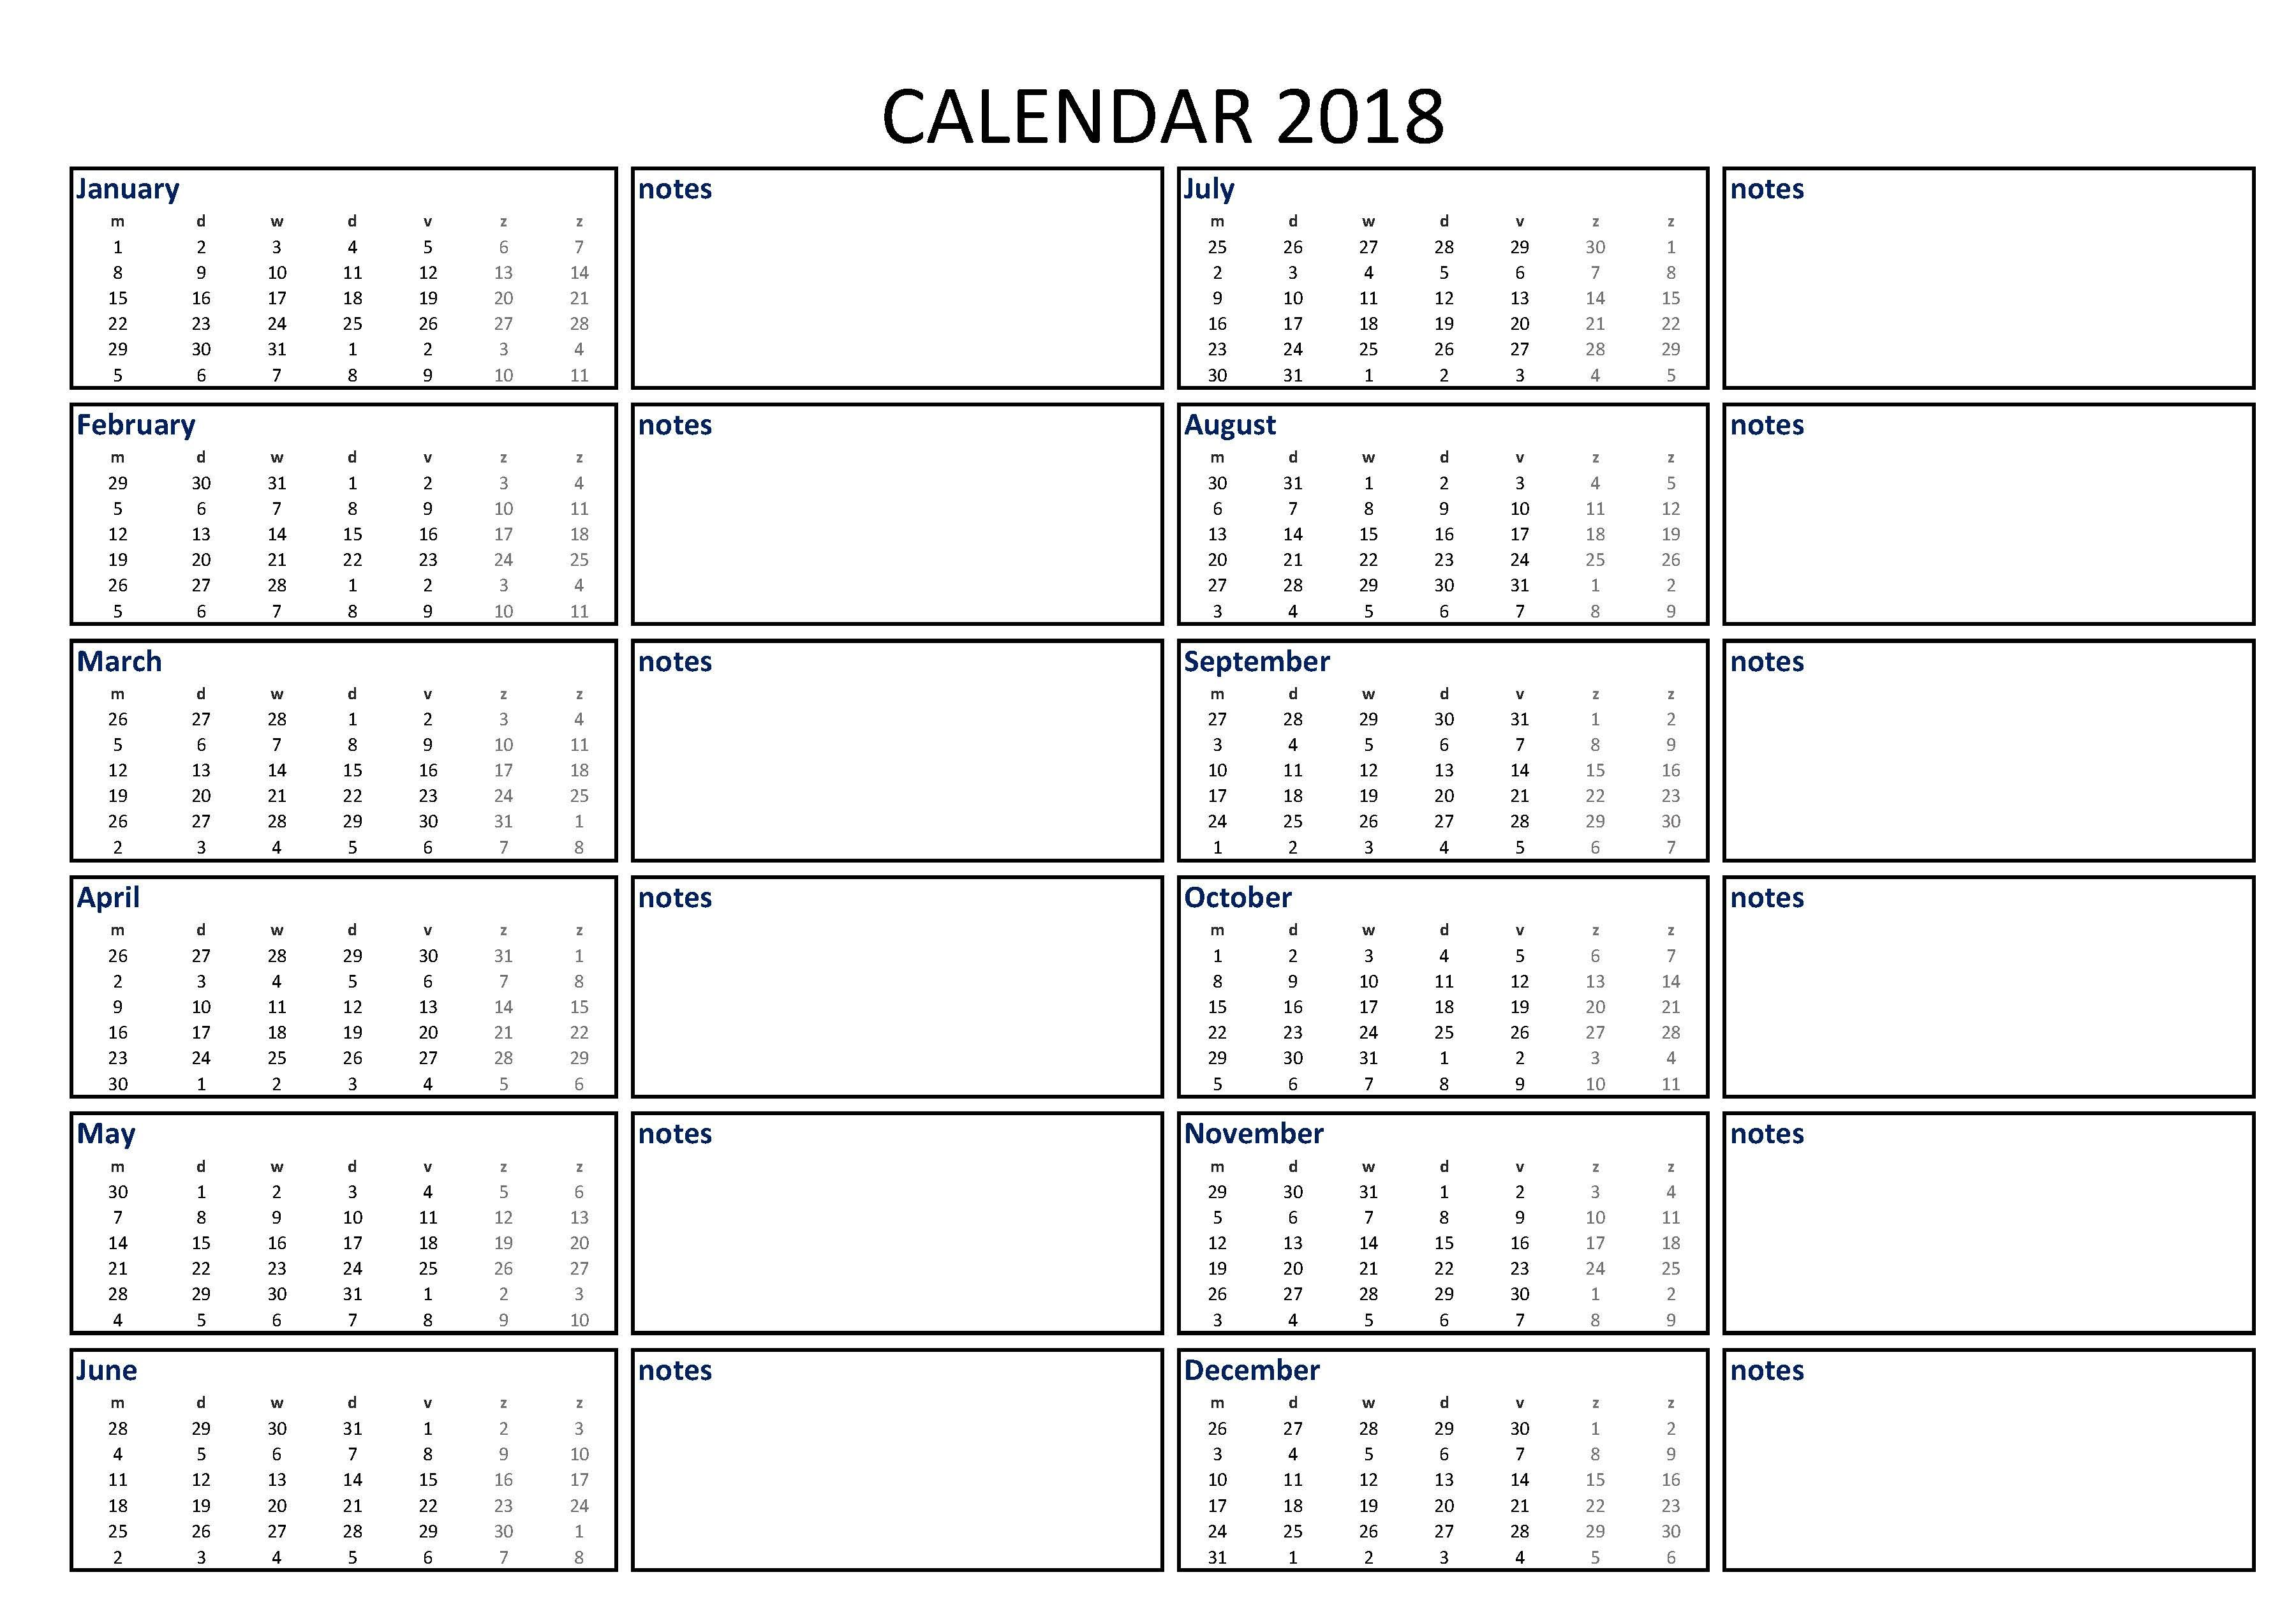 Calendar Excel A3 With Notes